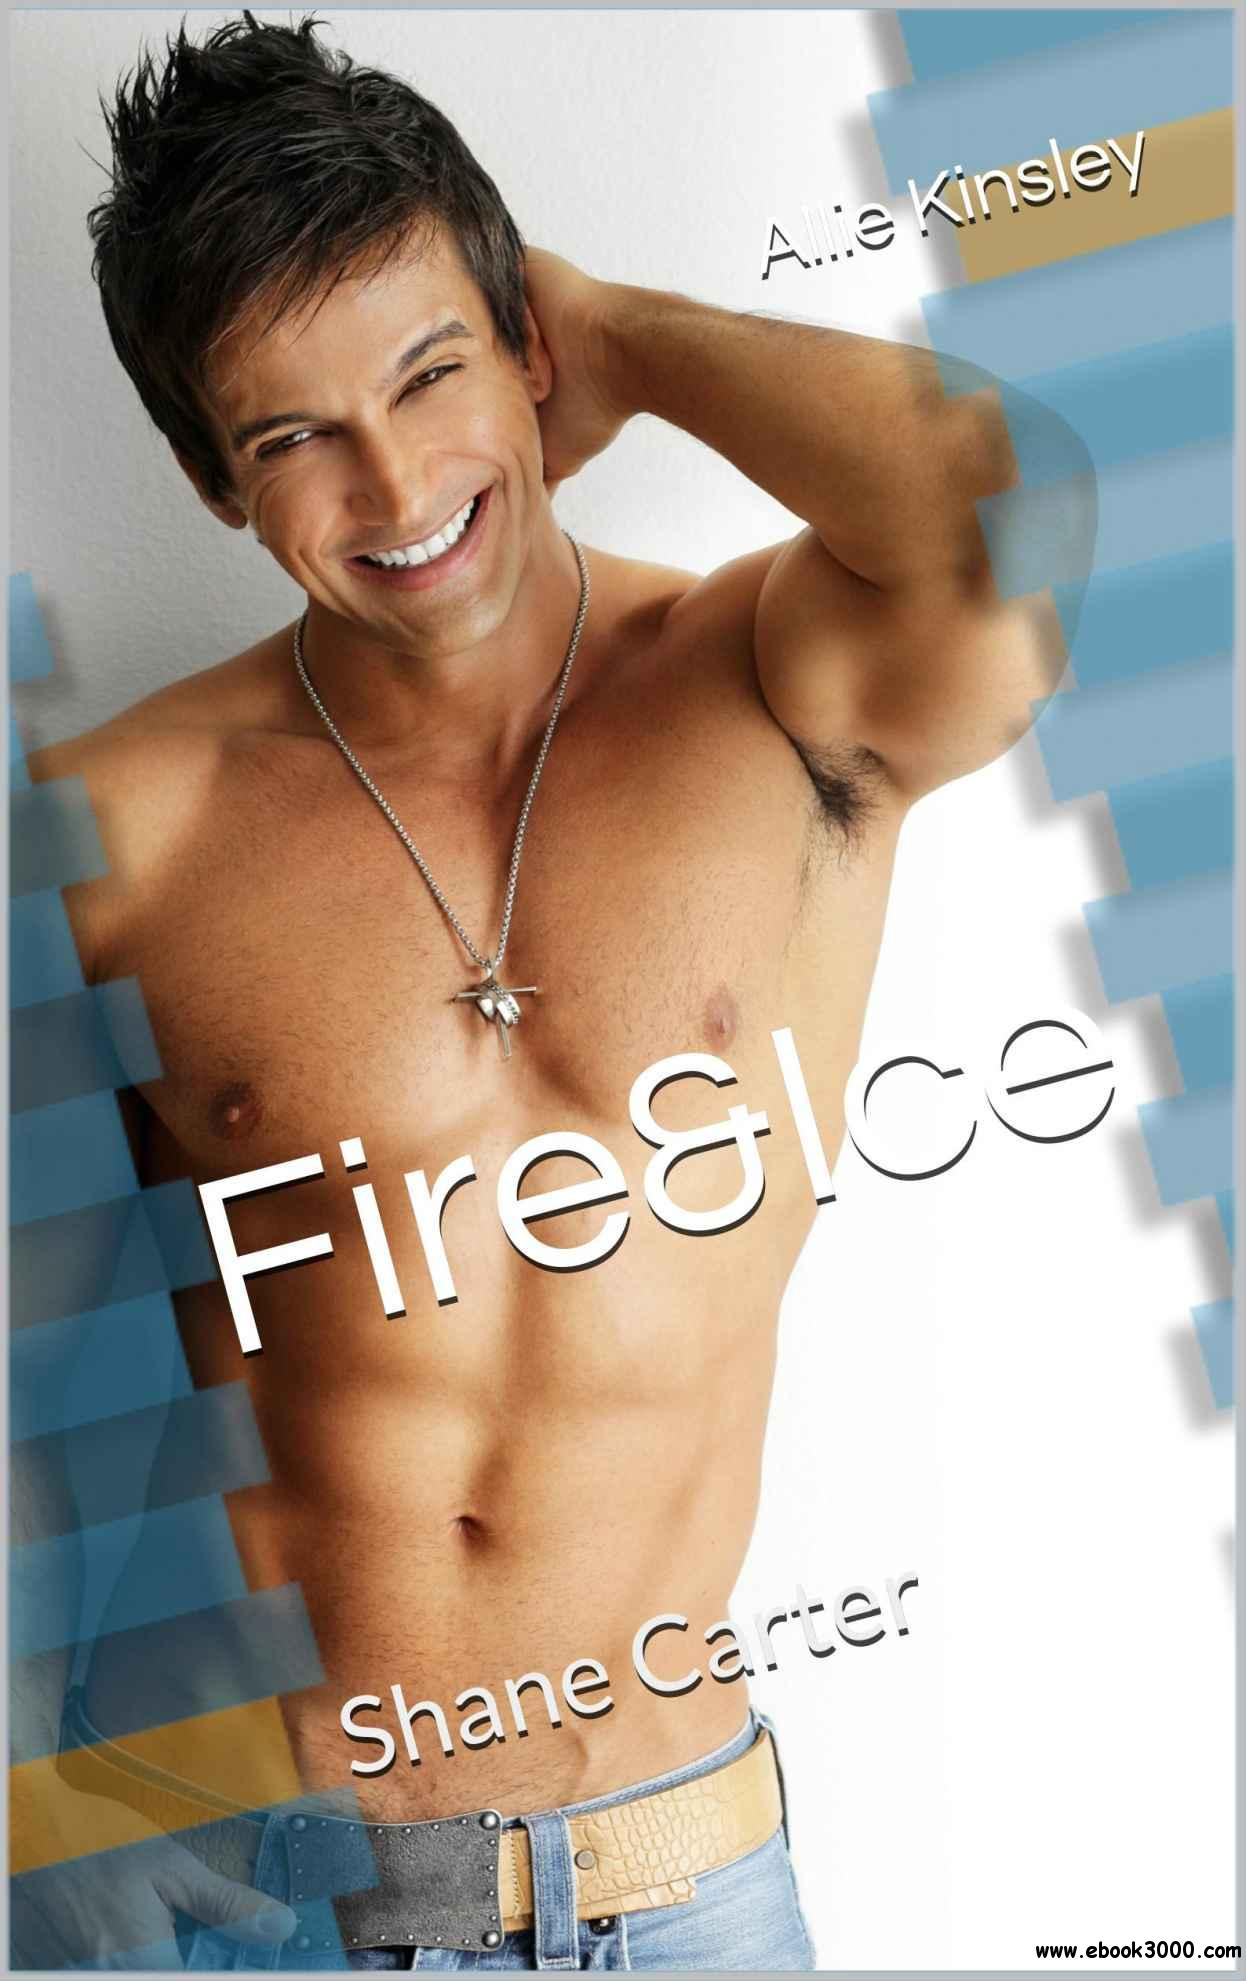 Kinsley, Allie - Fire&Ice 03 - Shane Carter free download